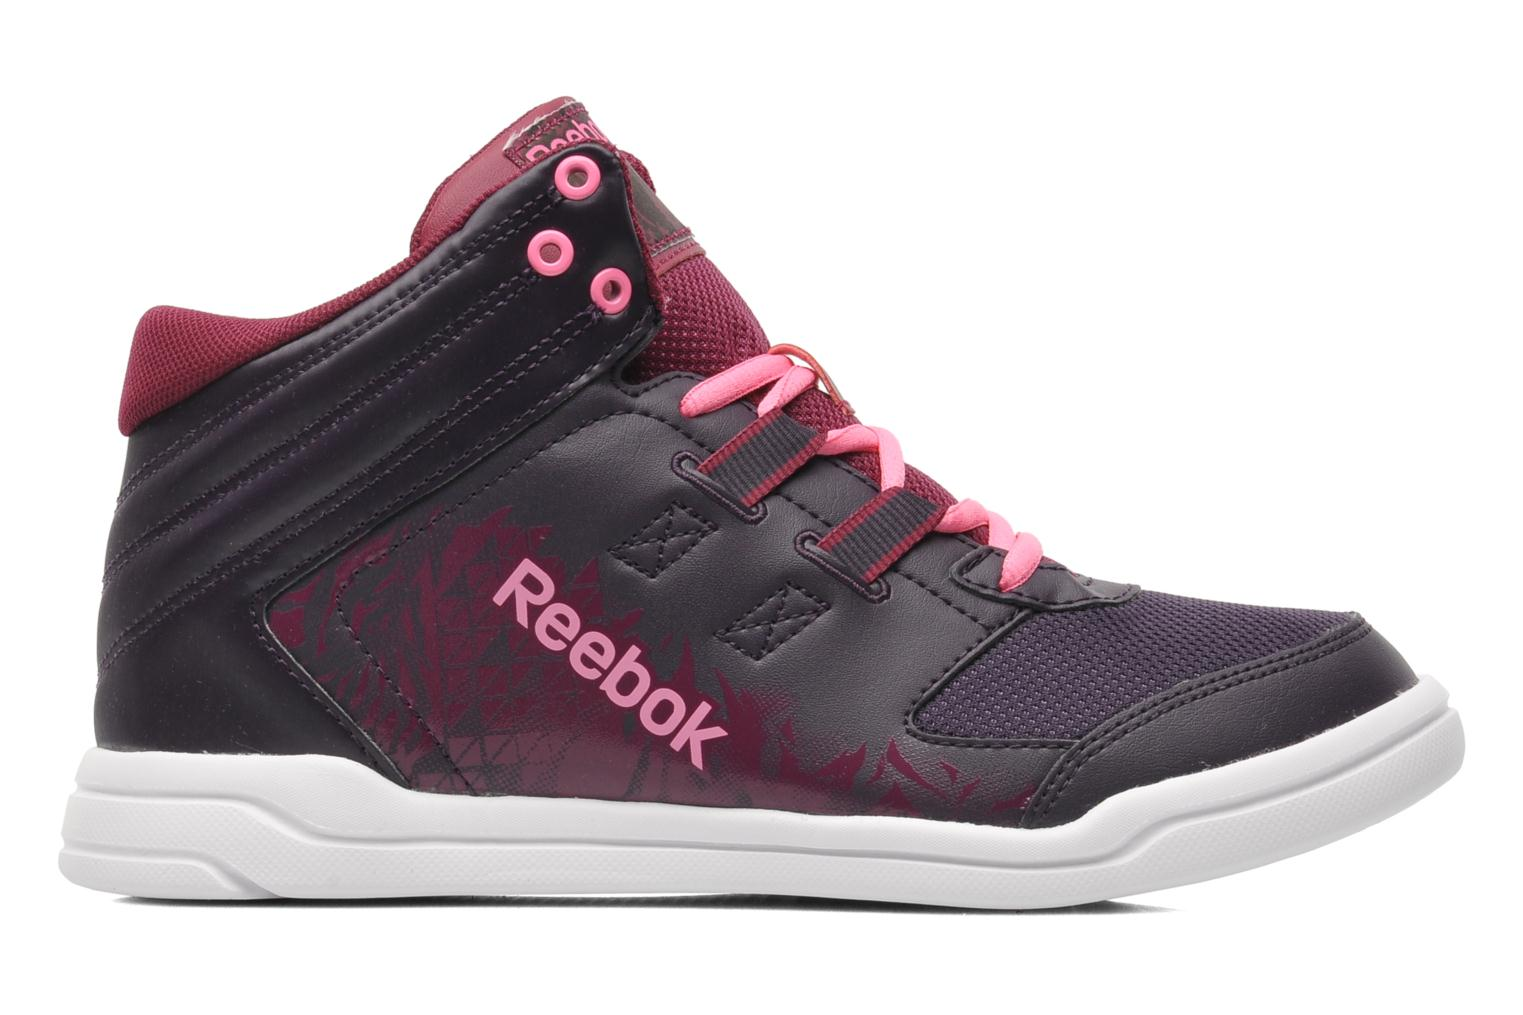 Dance Urmelody Mid Rs Portrait Purple-Rebel Berry-Electro Pink-Whte